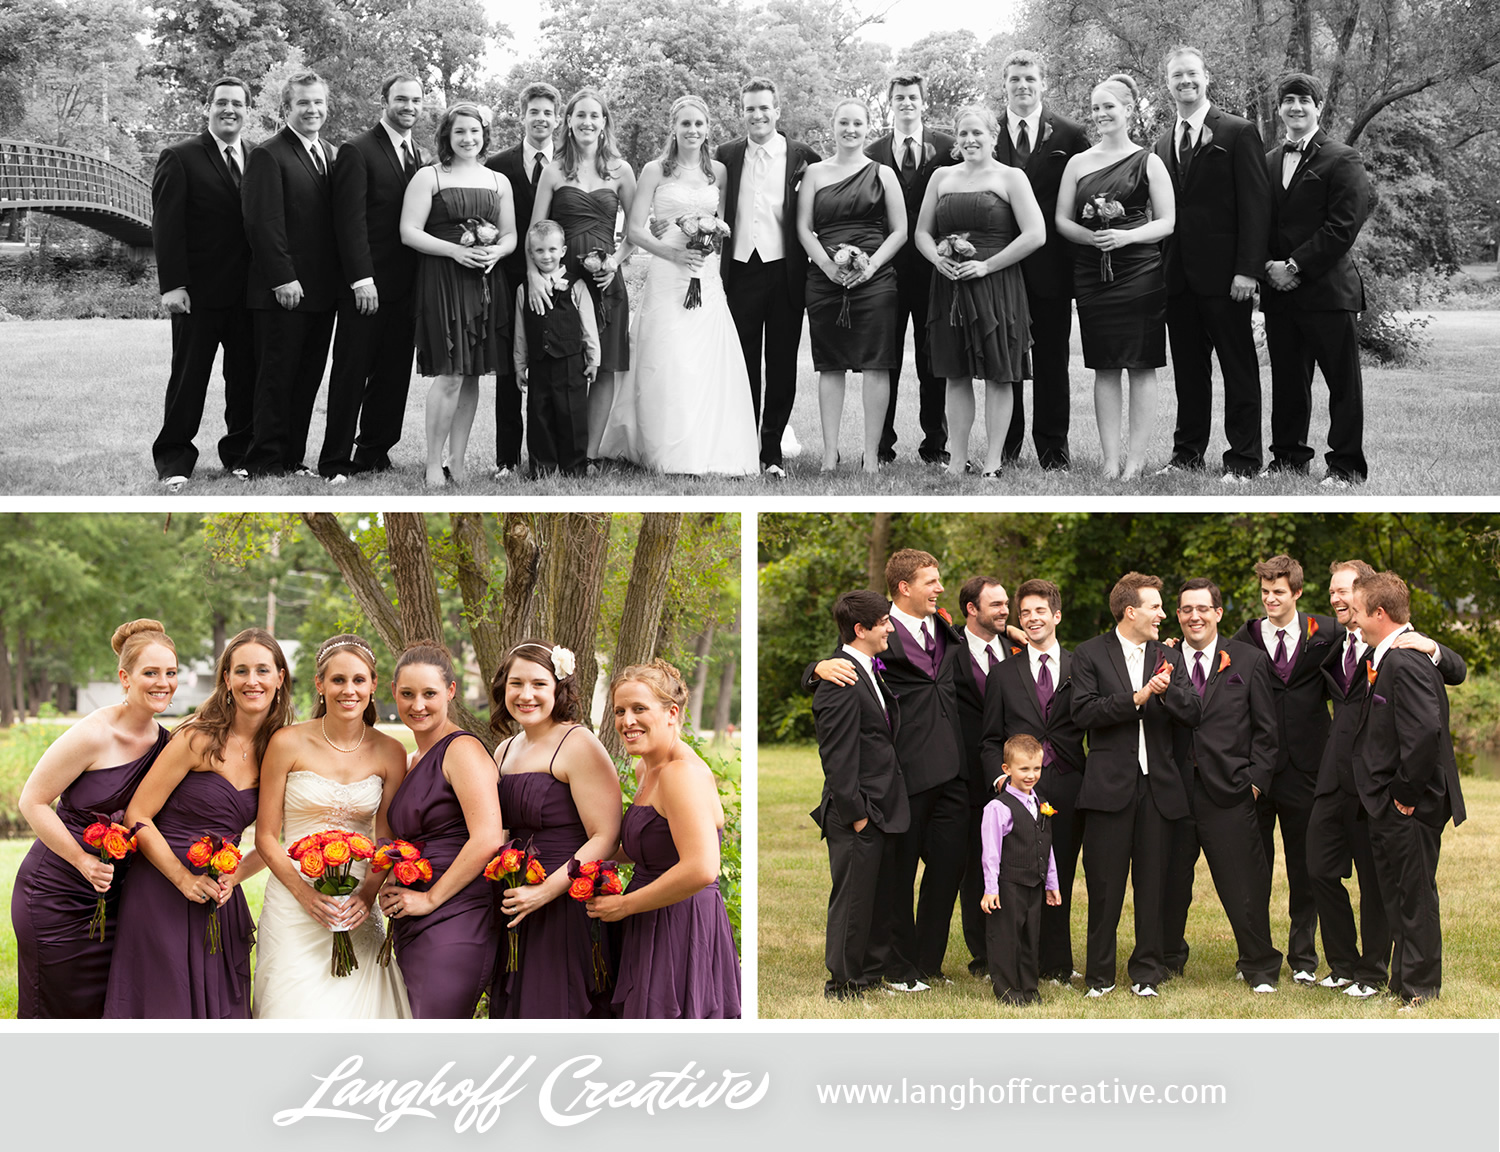 PlainfieldWedding-2013-LanghoffCreative-MattErin-12-photo.jpg